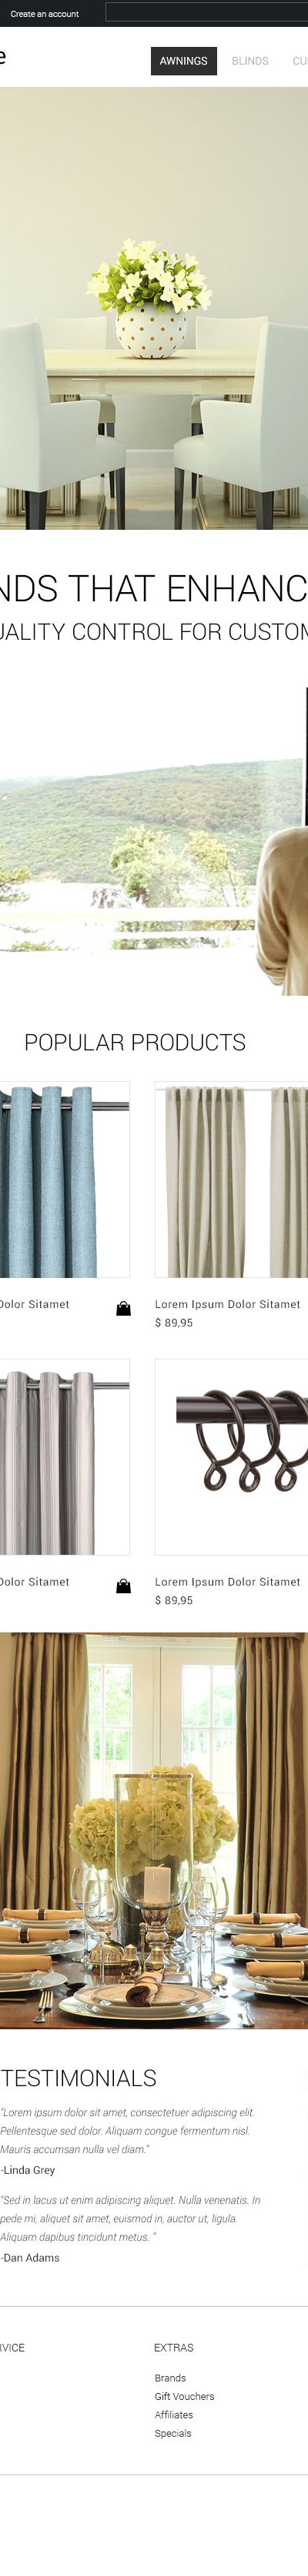 Interior Design OpenCart Template